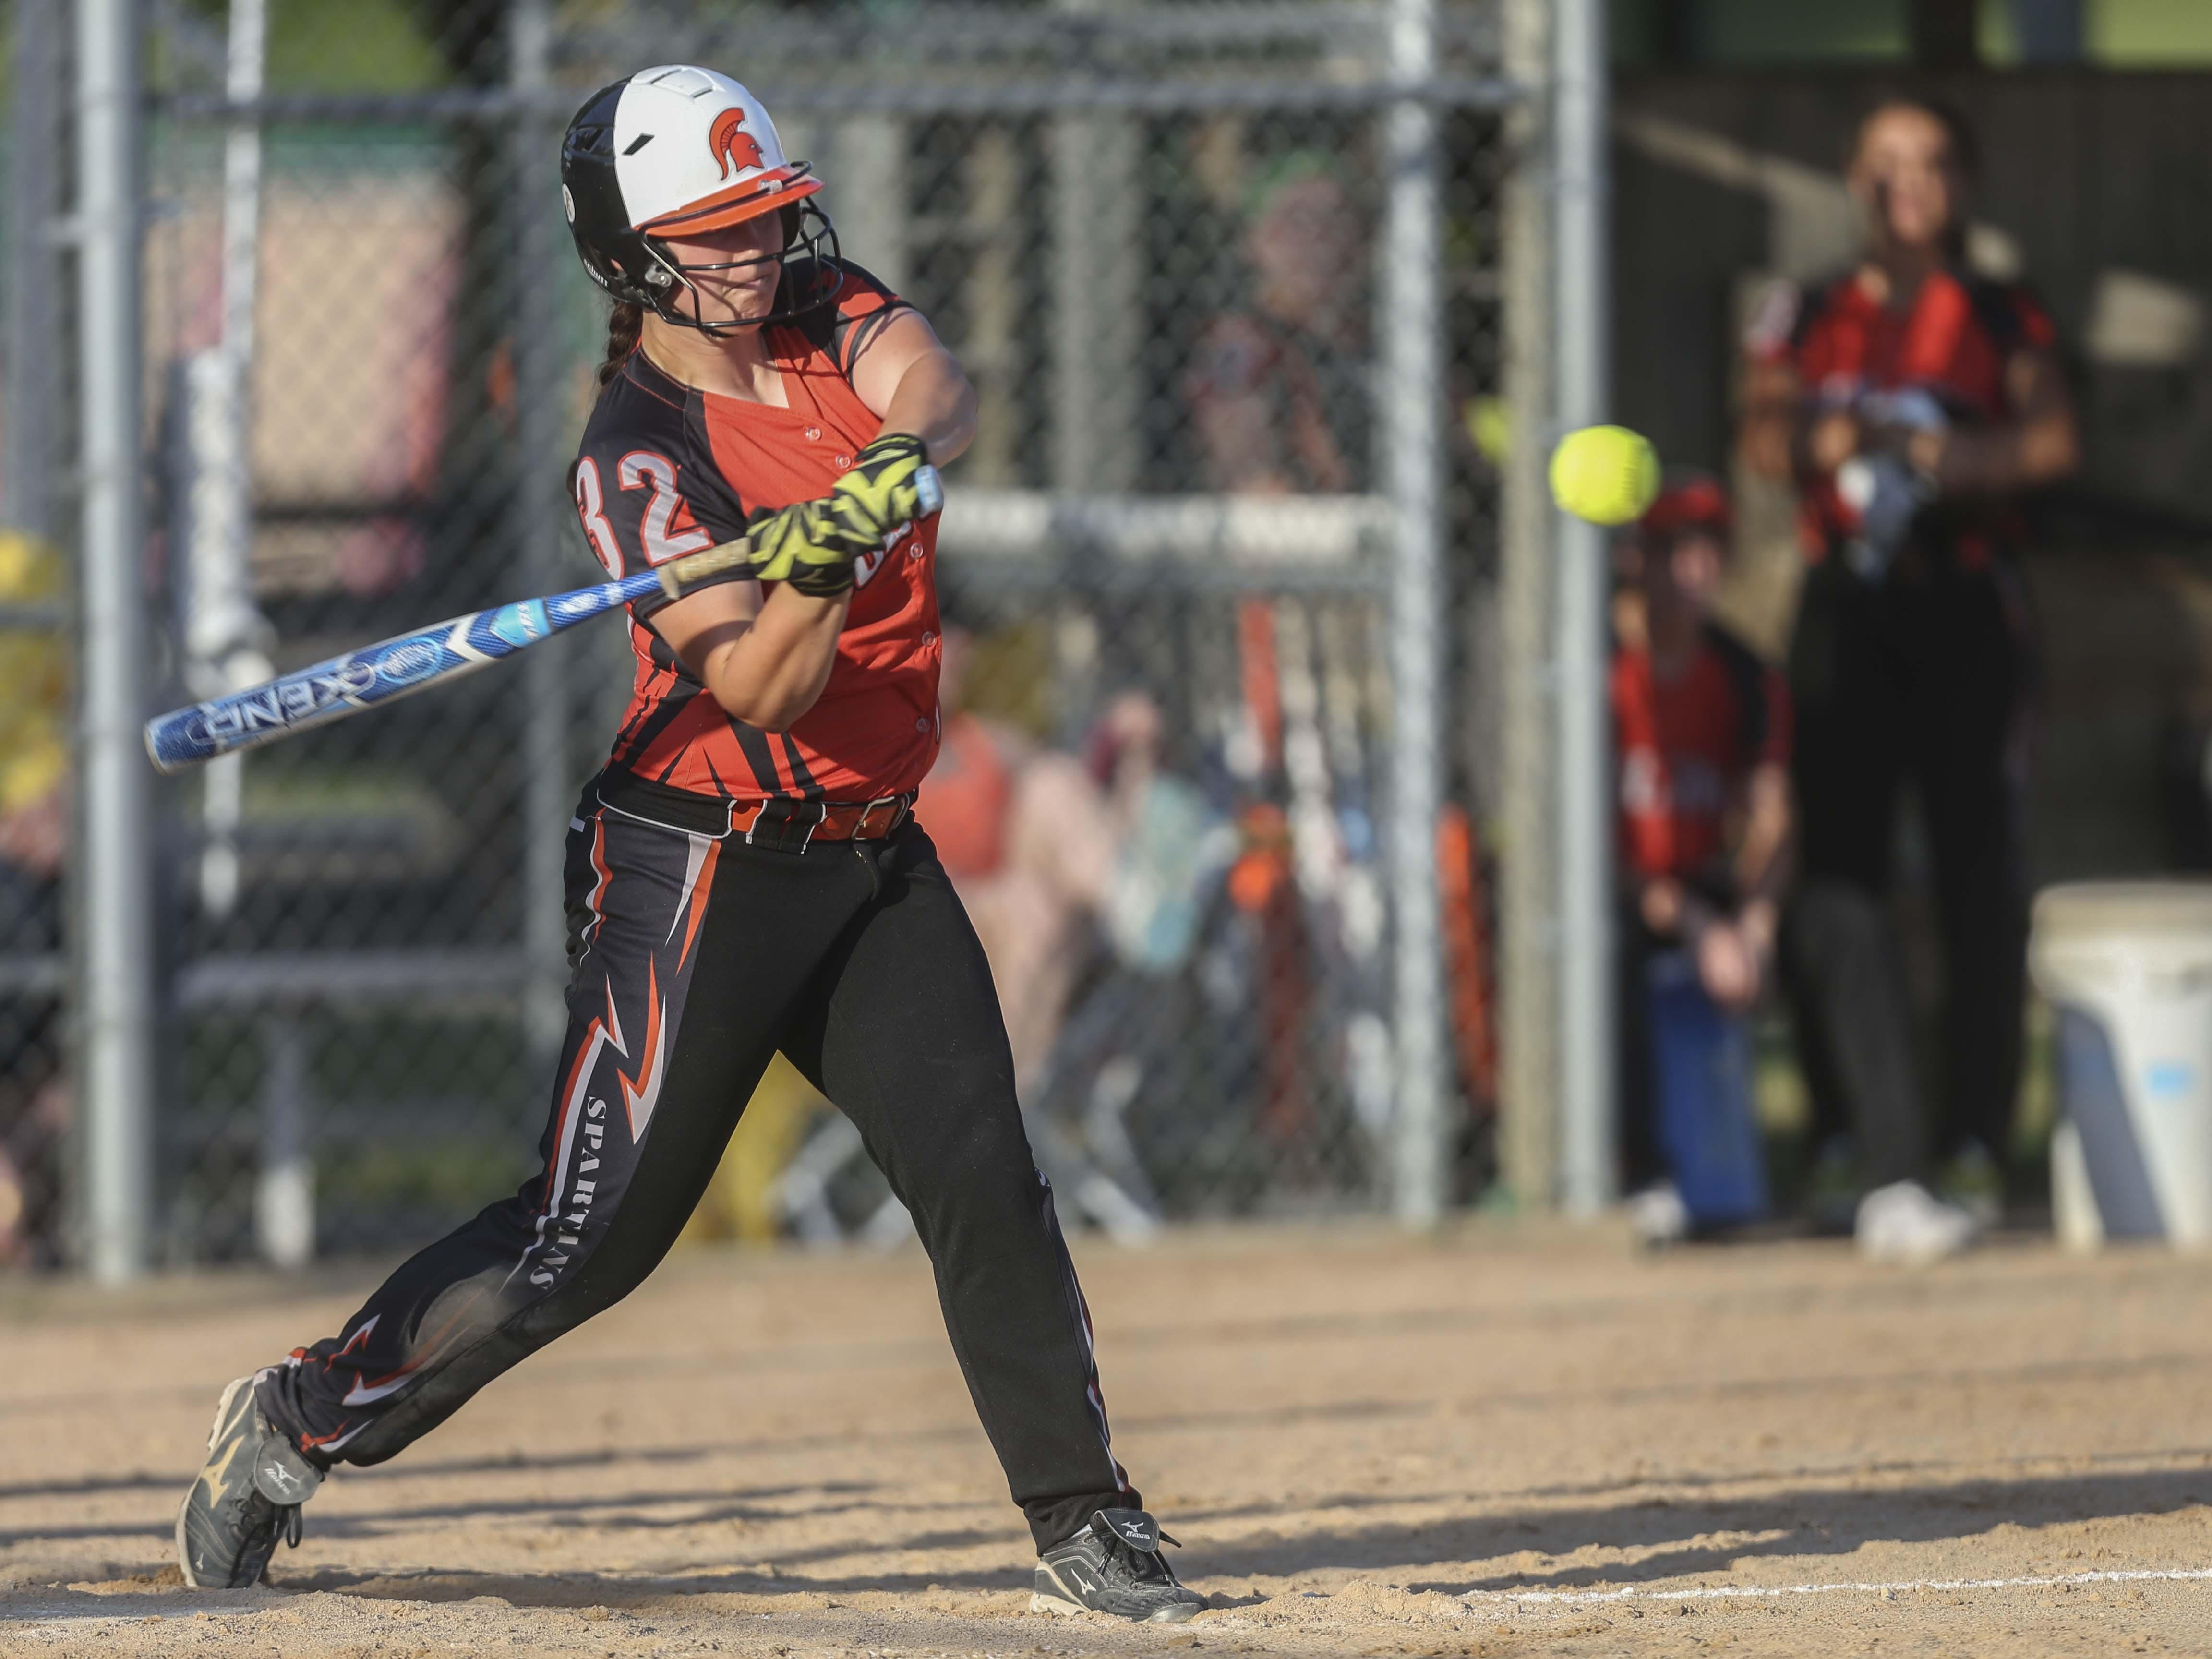 Solon's Lexi Stebral hits the ball during a softball doubleheader between Solon High School and Dyersville Beckman on Tuesday, June 9, 2015.